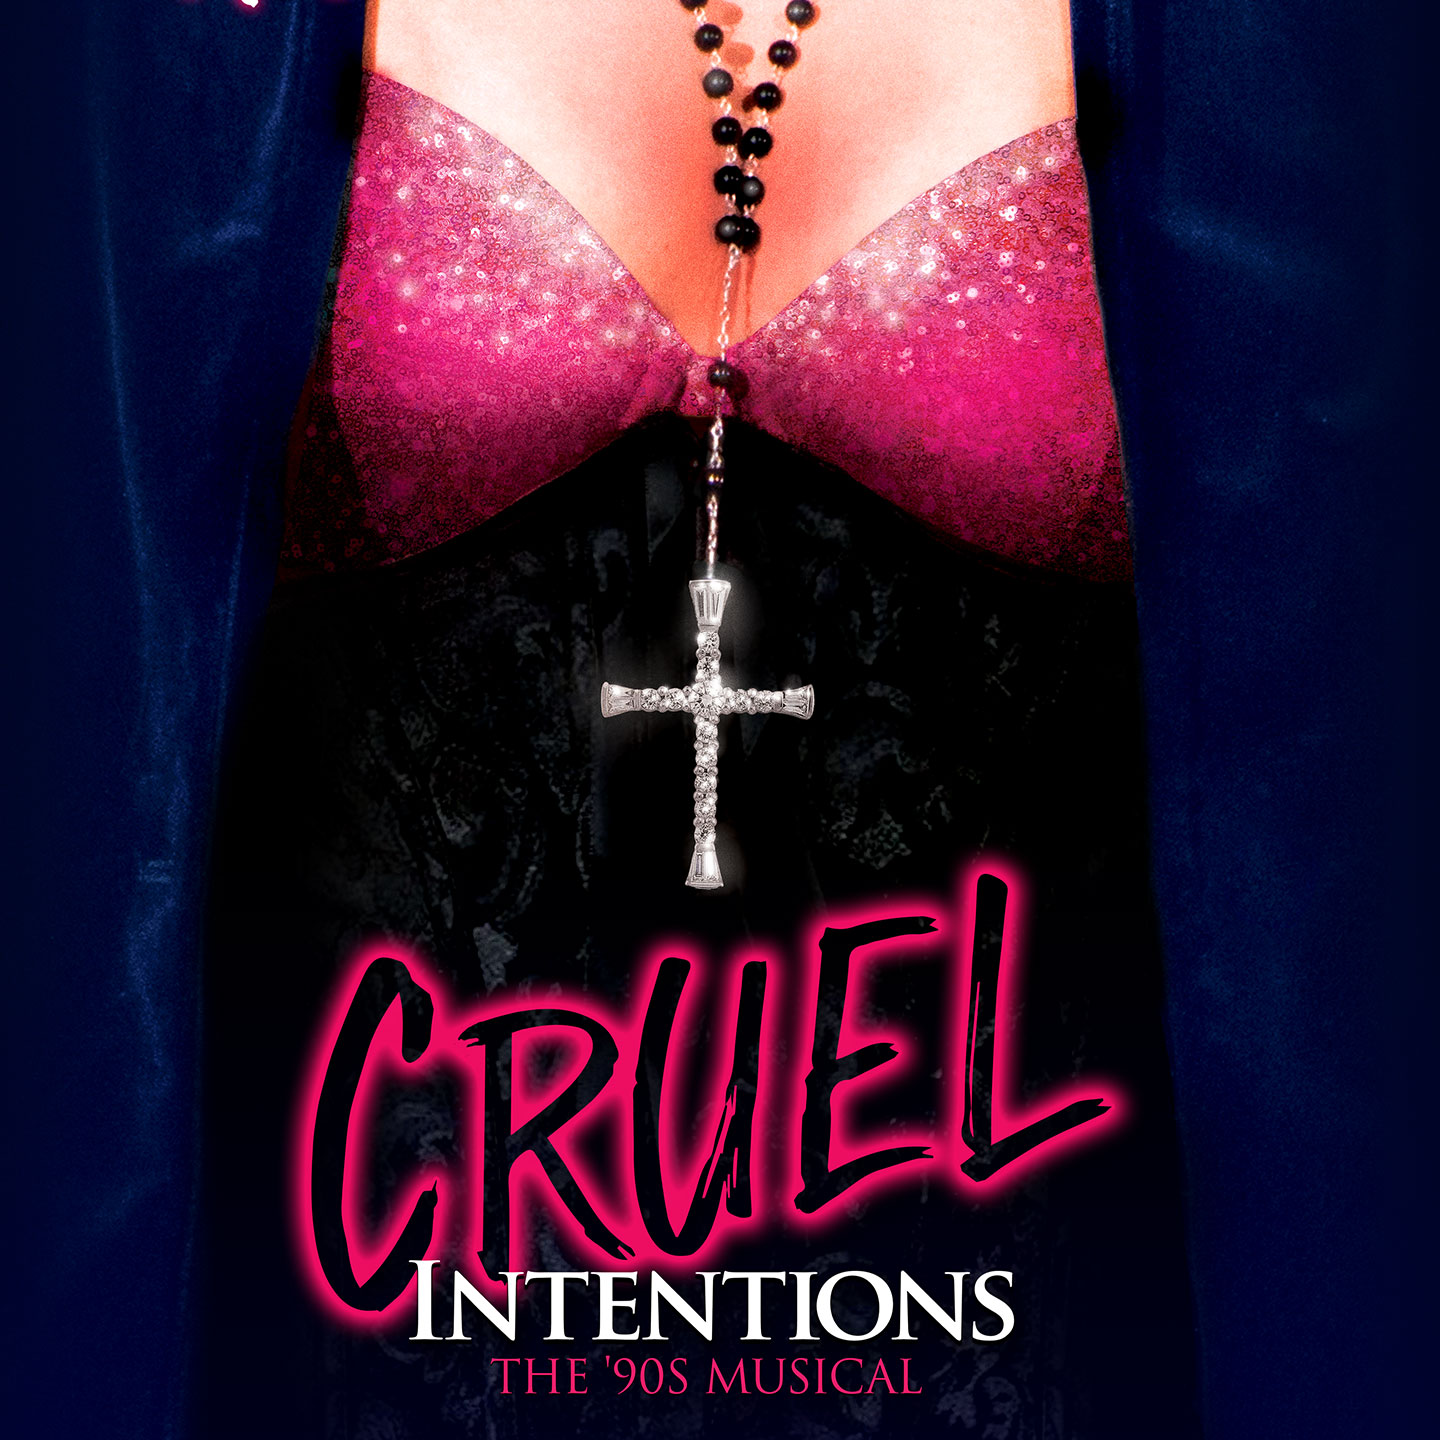 Cruel Intentions: The 90s Musical